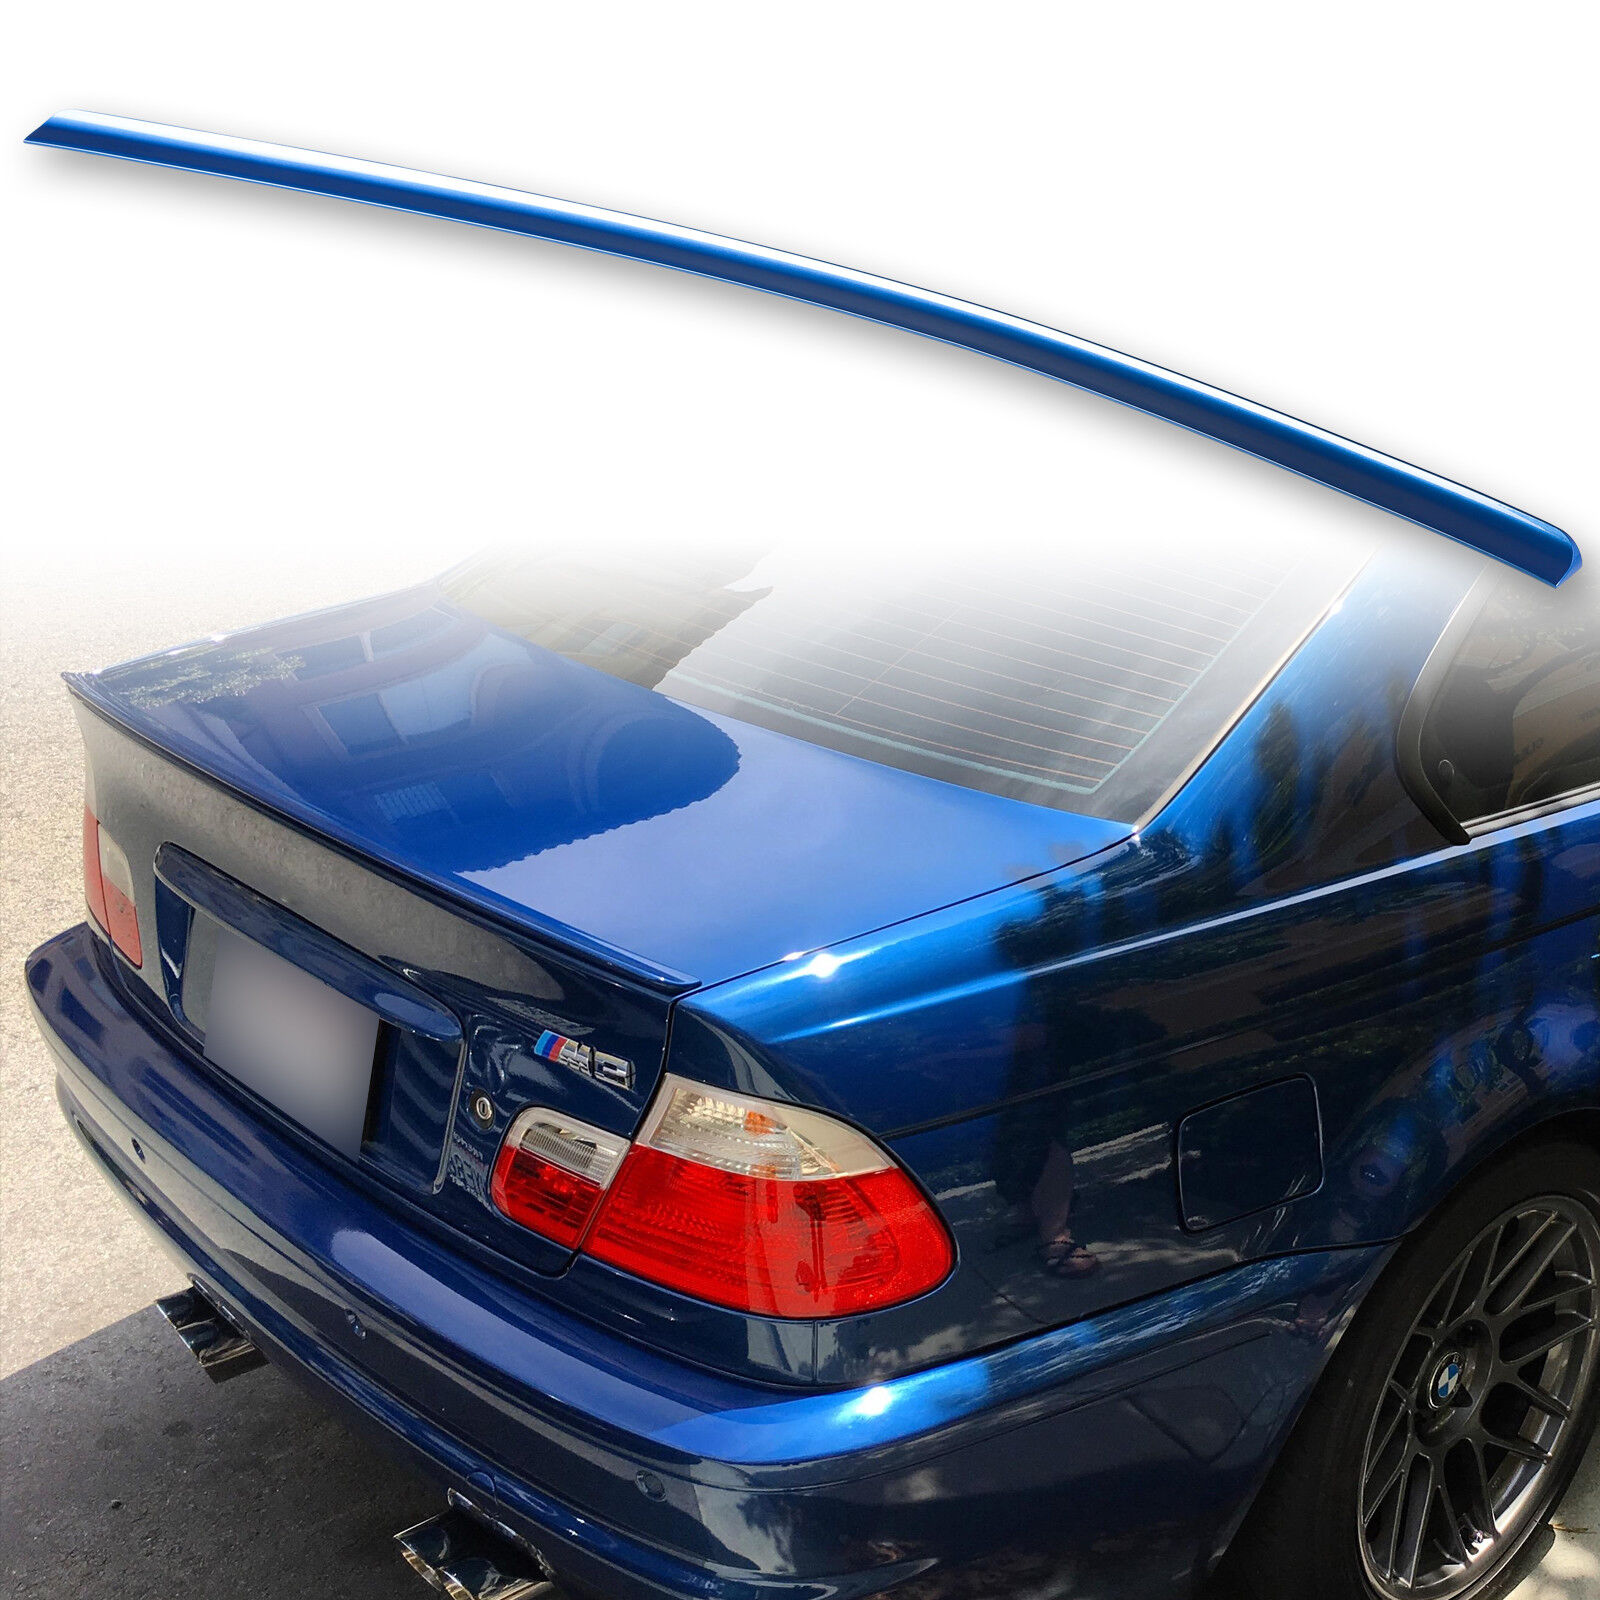 For Bmw Tuning E46 Painted Spoiler Lip M3 Sport Rear Wing Tailgate Boot Car Tuning Styling Vehicle Parts Accessories